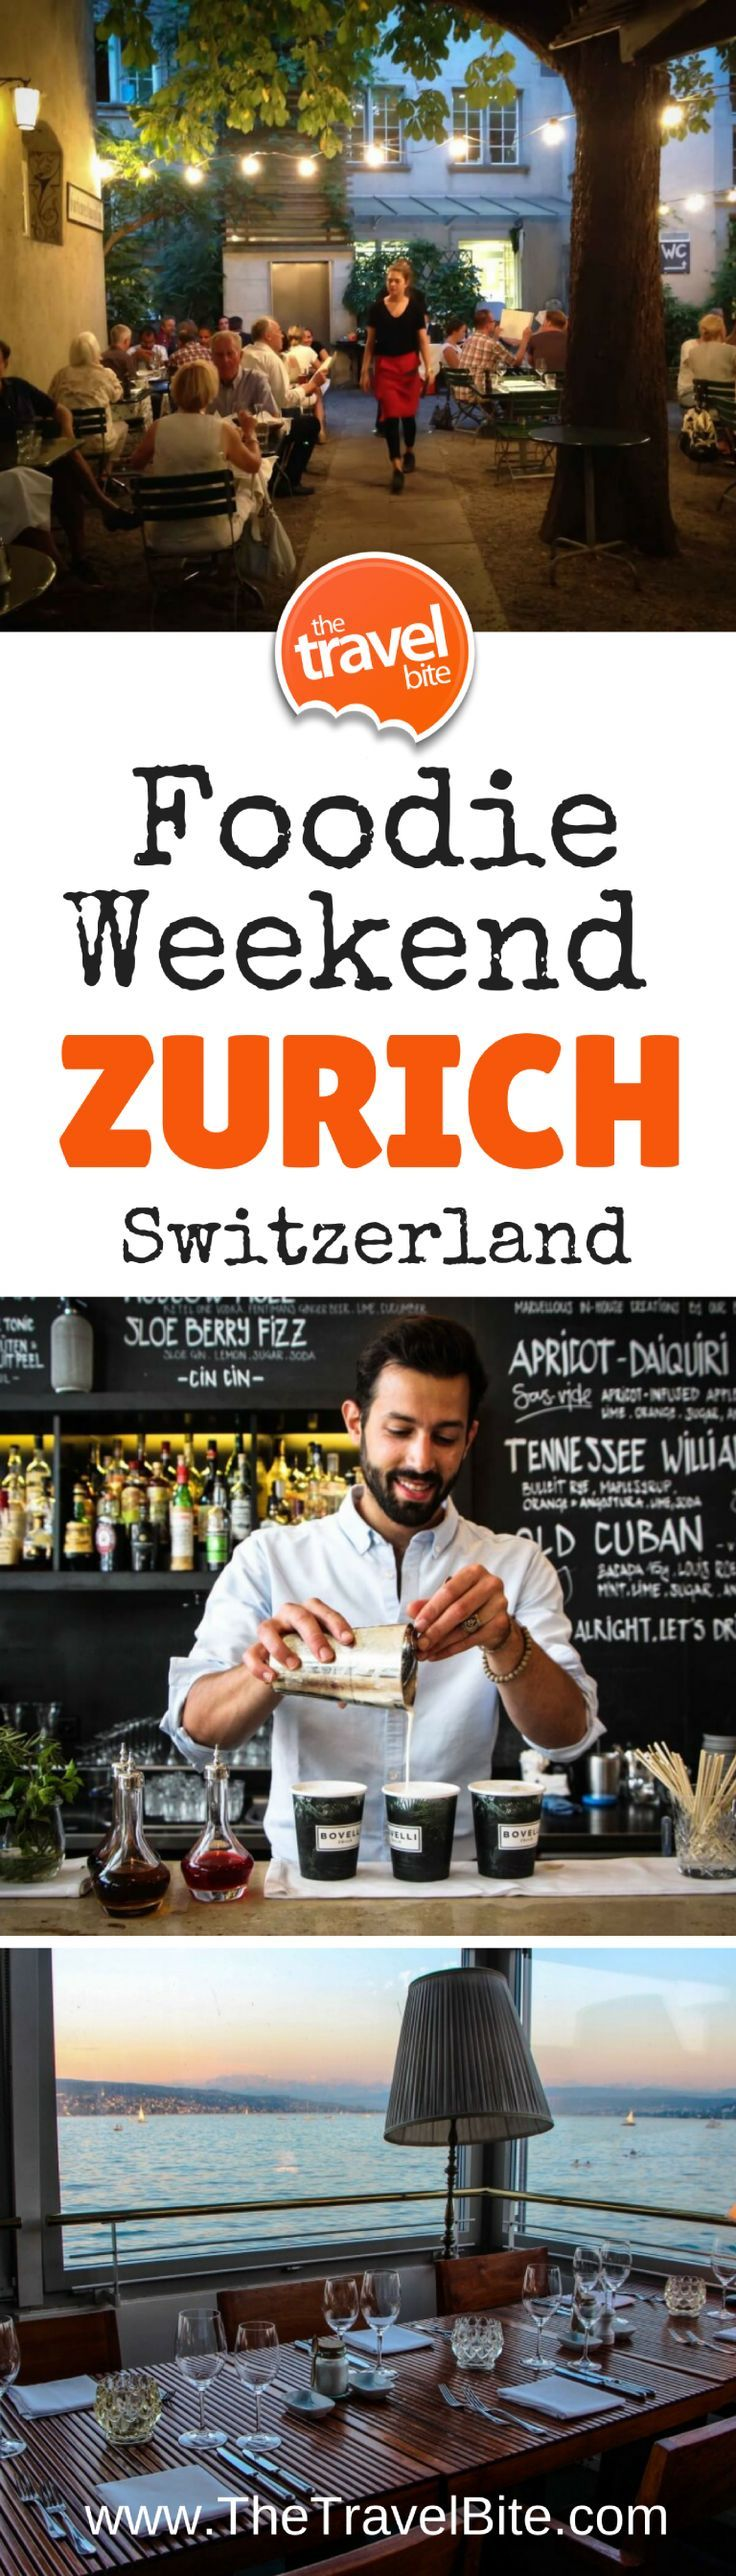 79 best images about my photography on pinterest santiago cook - Where To Eat In Zurich Http Thetravelbite Com